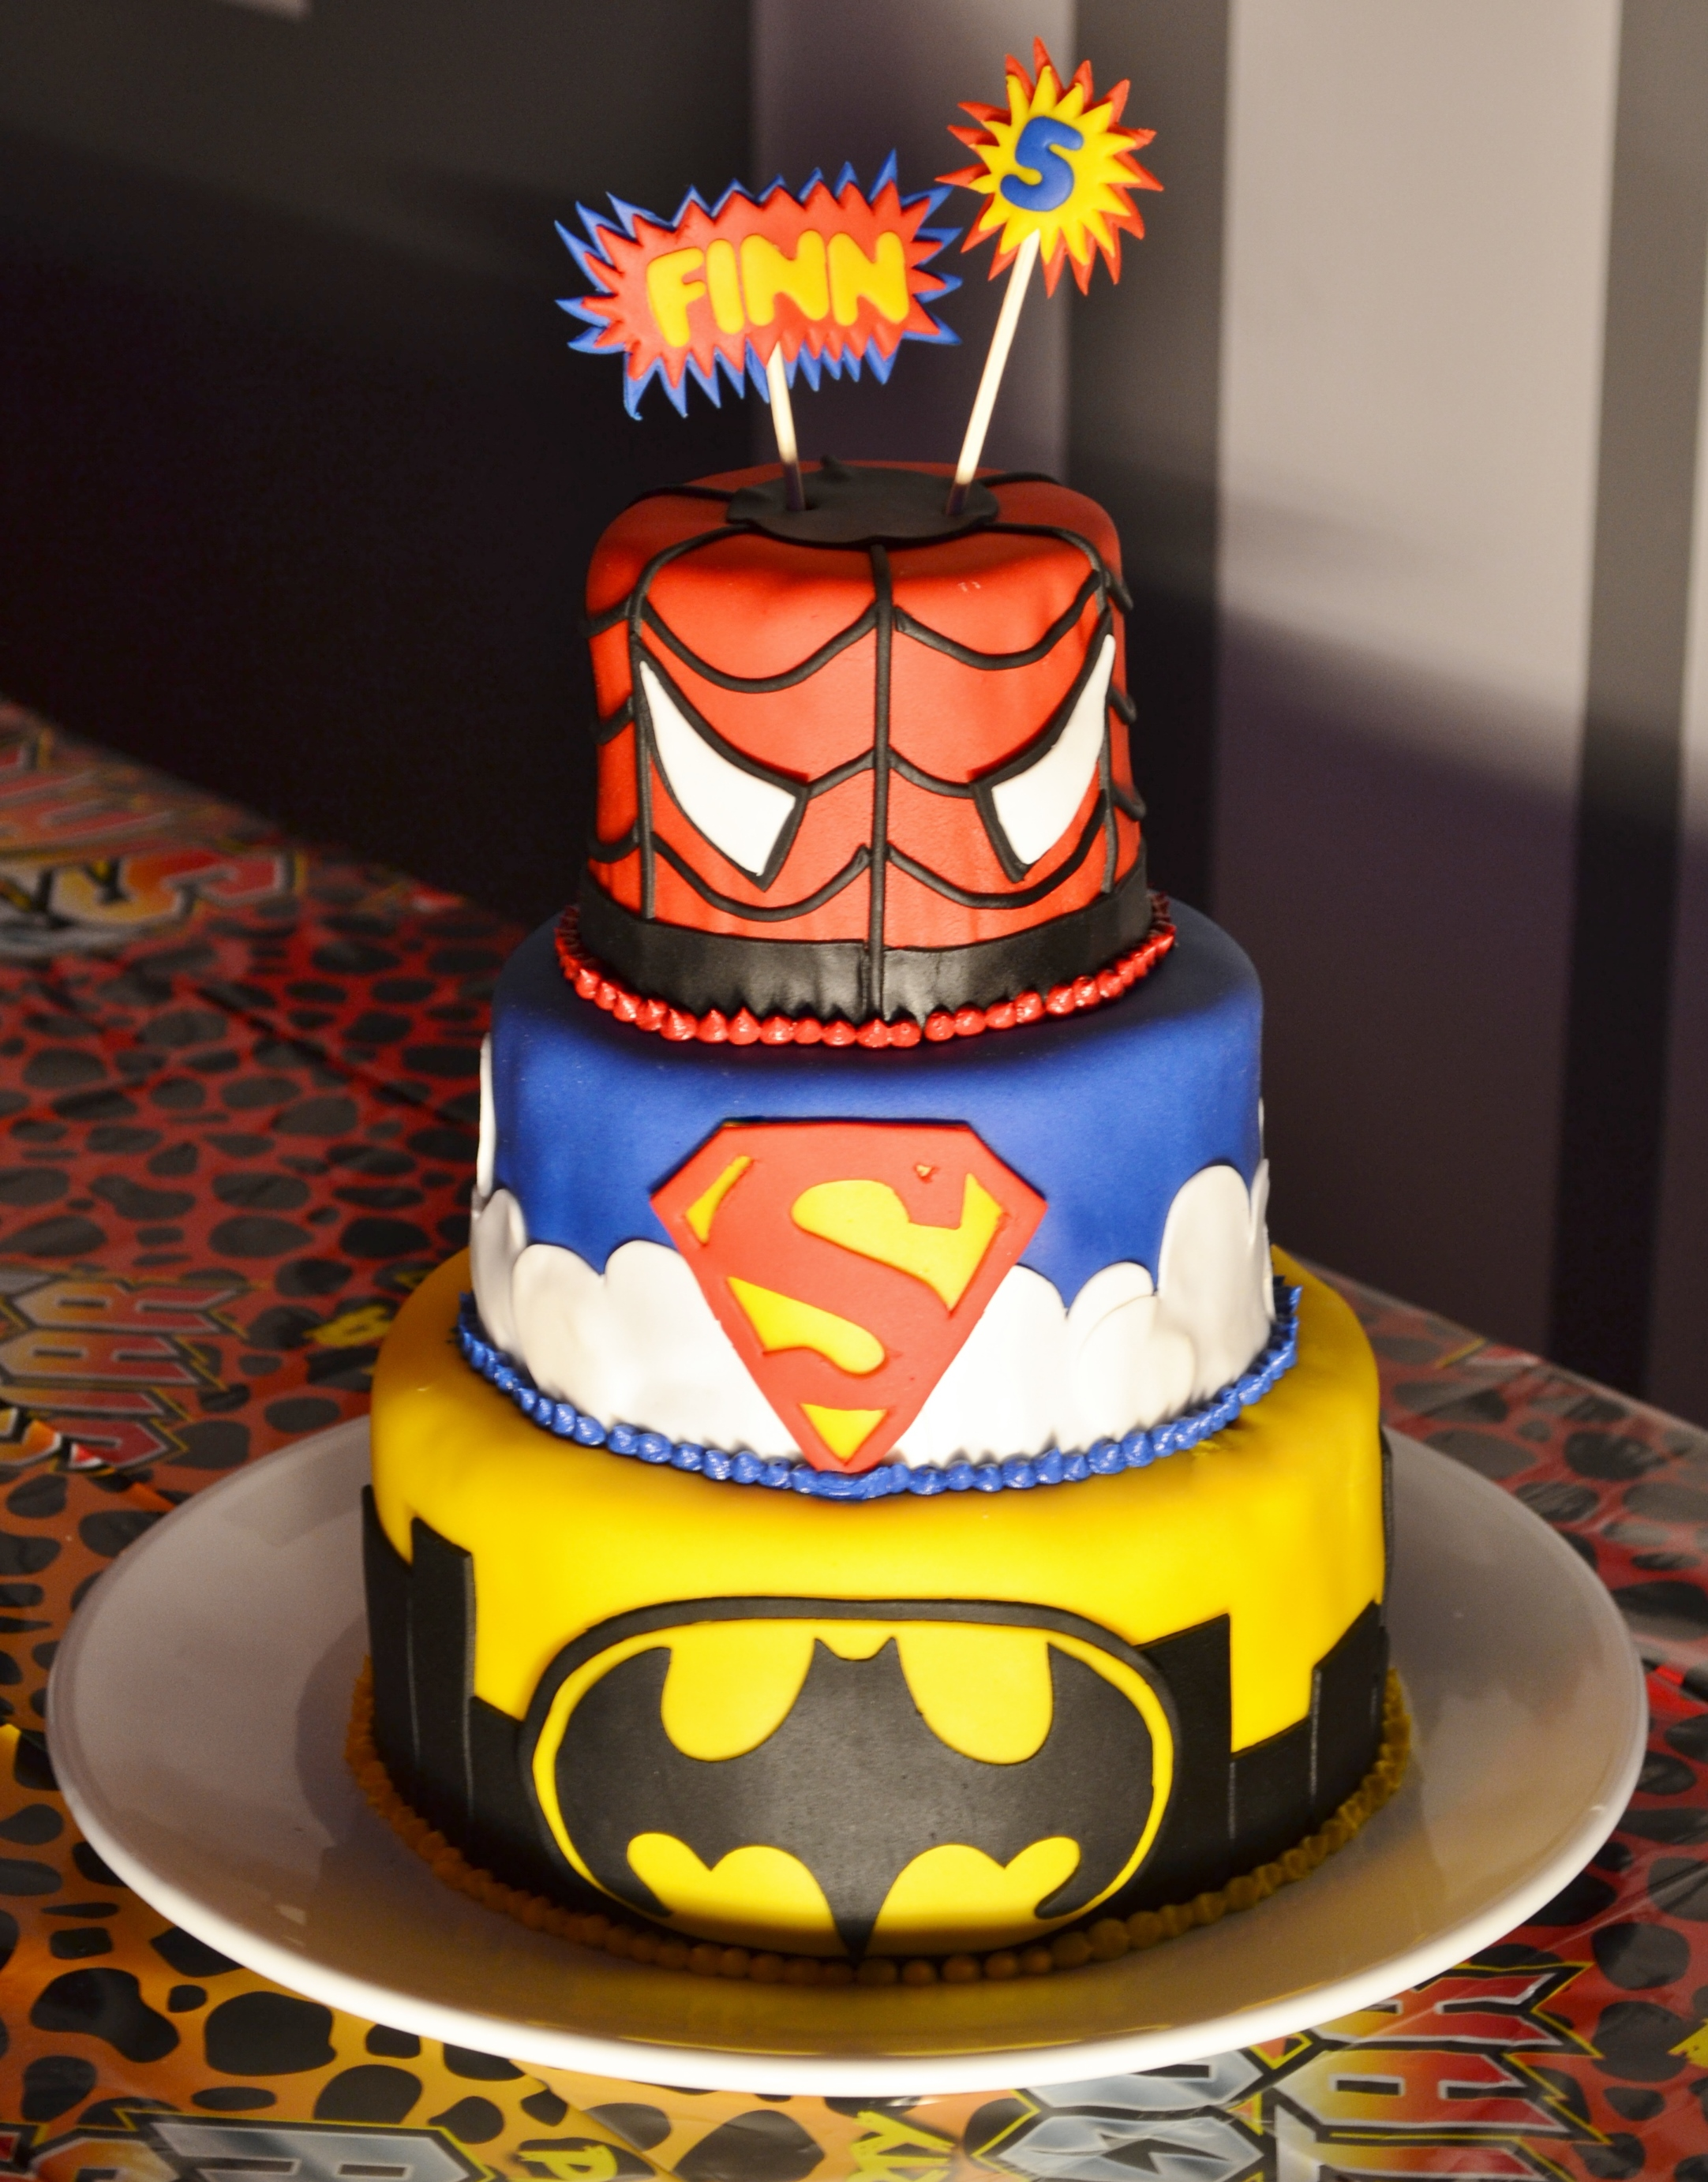 Birthday Cake Images For 5 Year Old Boy : Superhero 5th Birthday